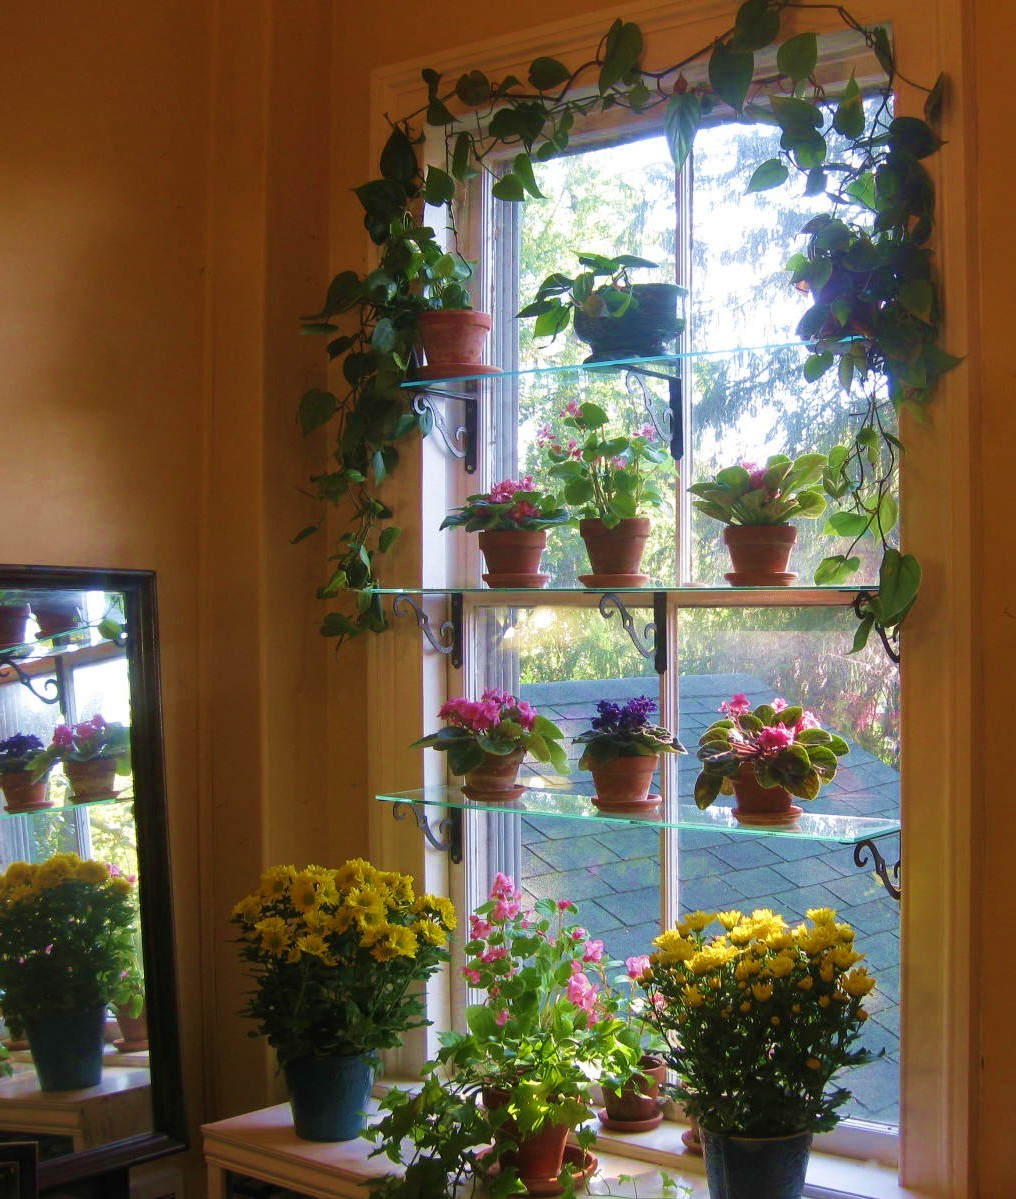 Design a Window Garden!